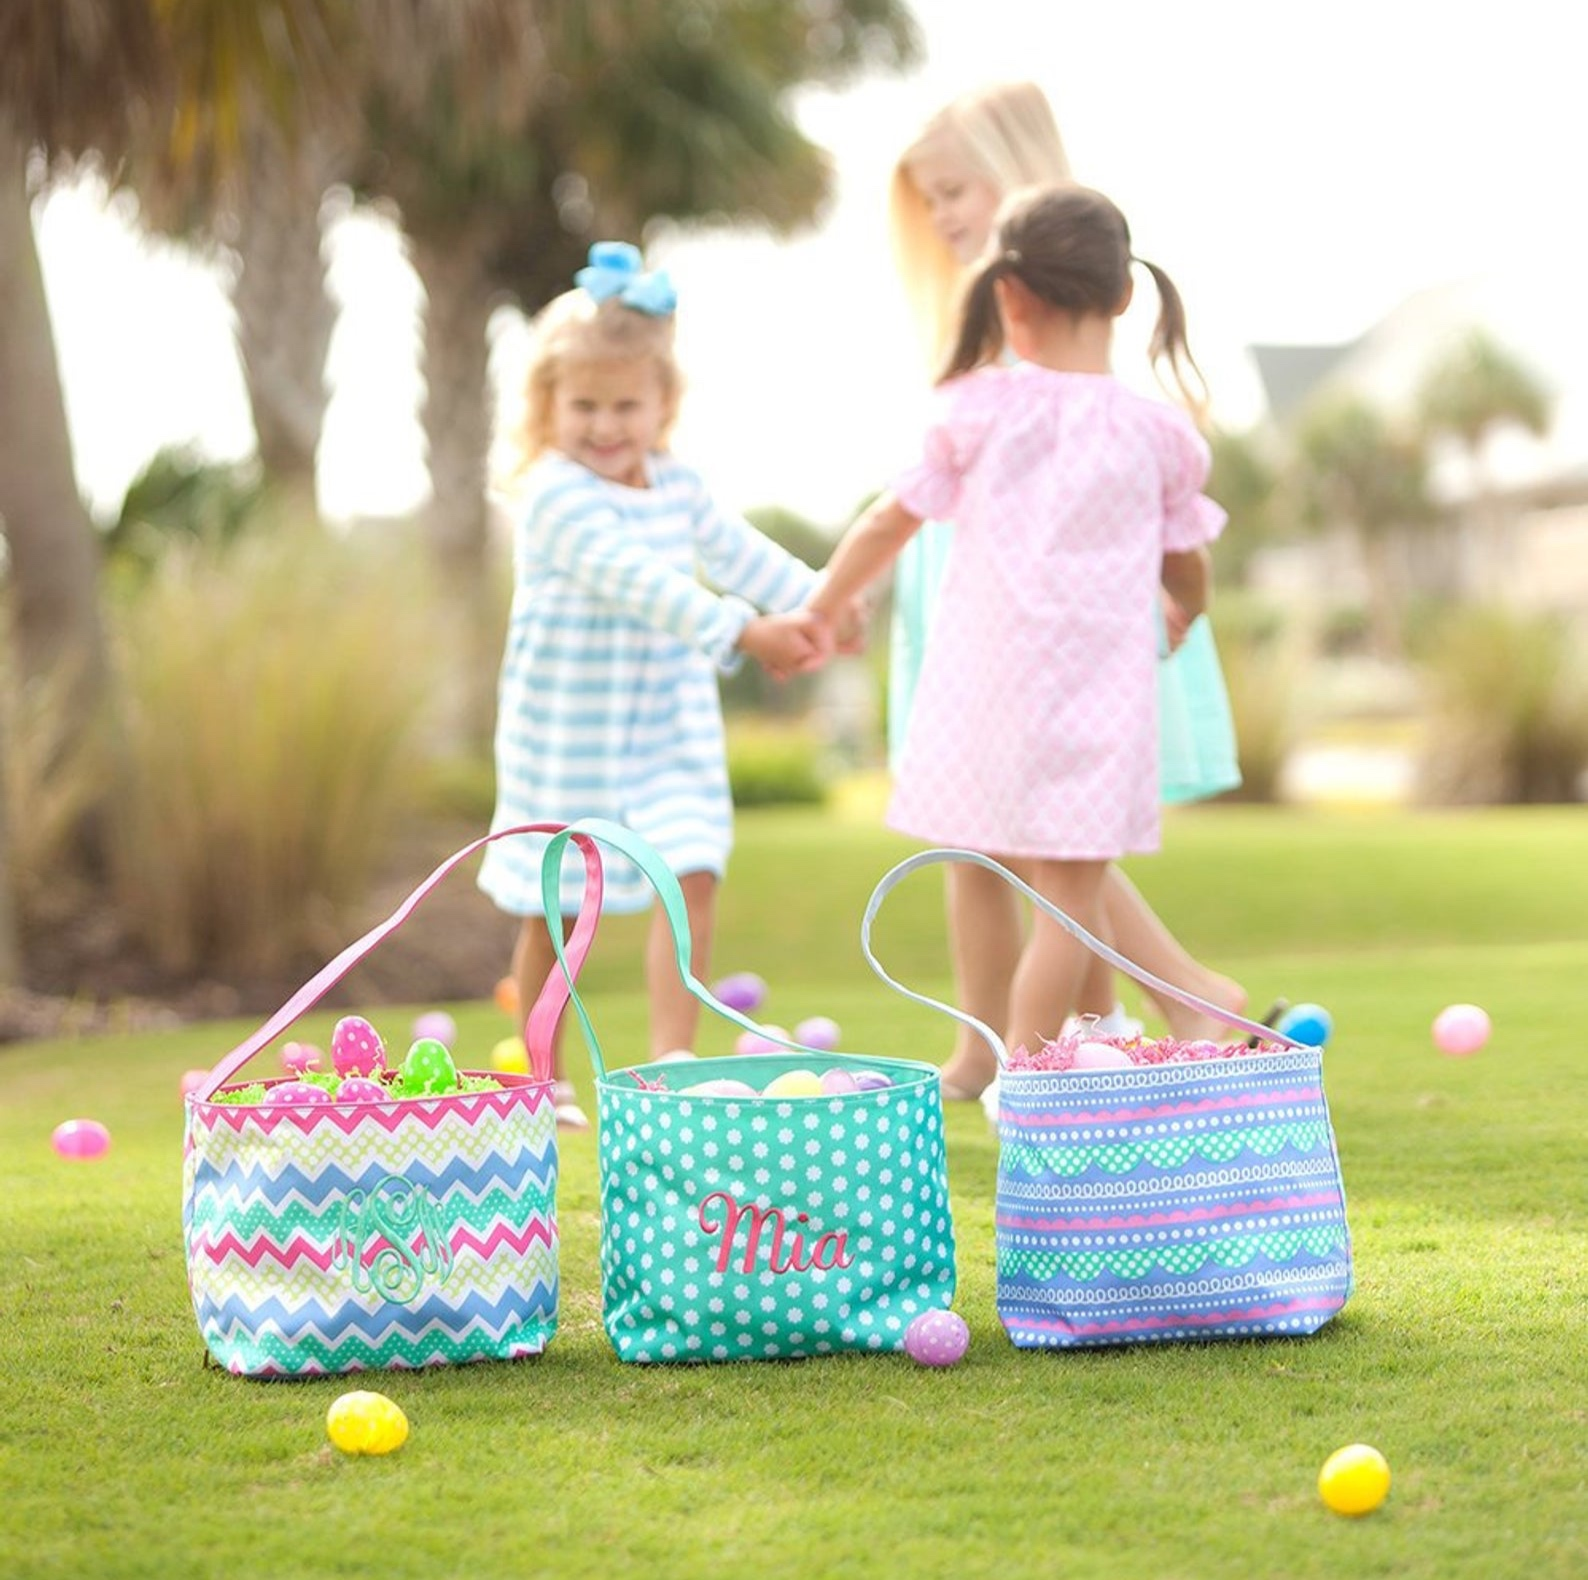 Personalized Monogrammed Girls Easter Baskets By Monkey See Boutique